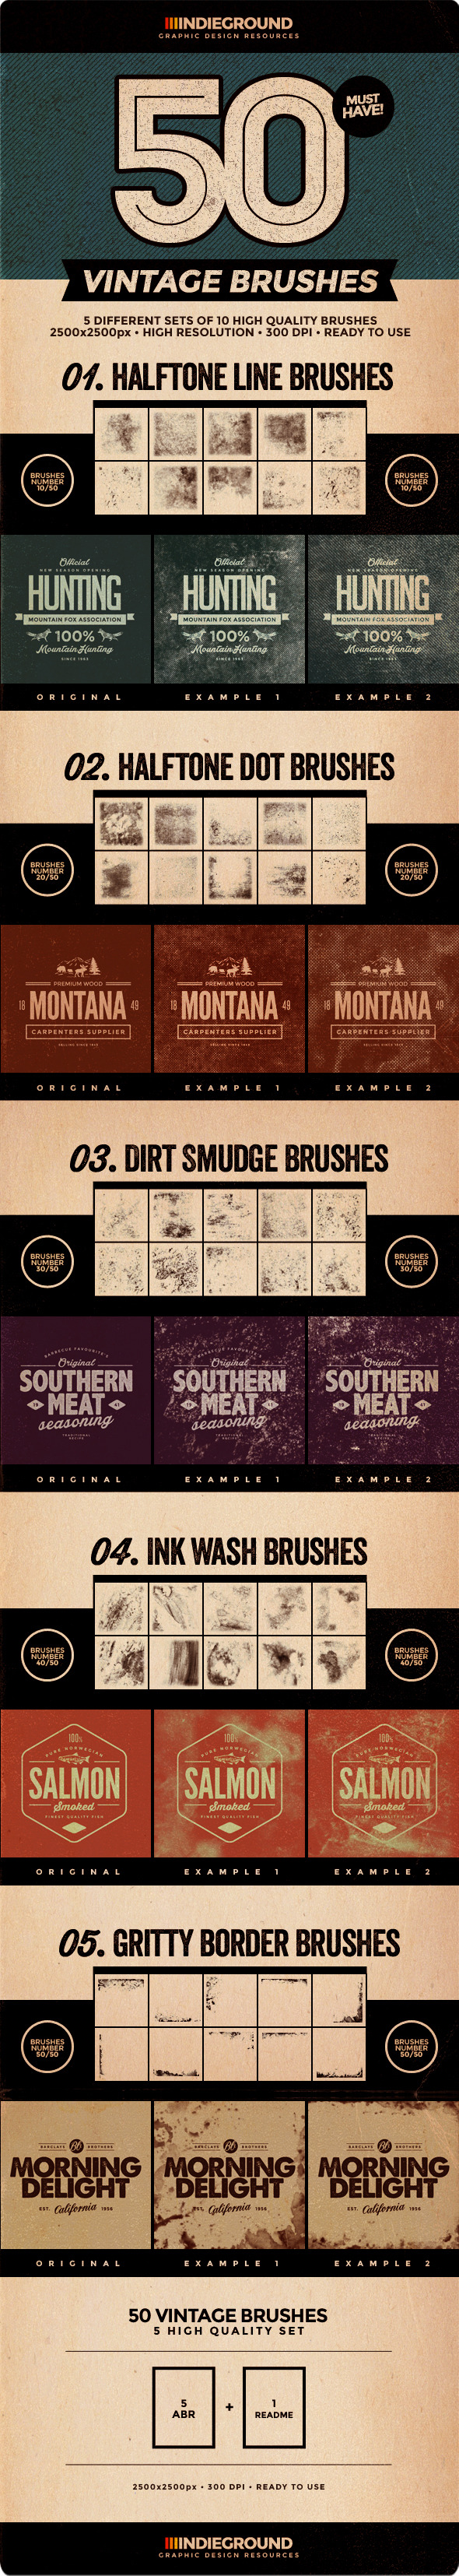 GraphicRiver 50 Vintage Brushes Set Vol 2 10431824